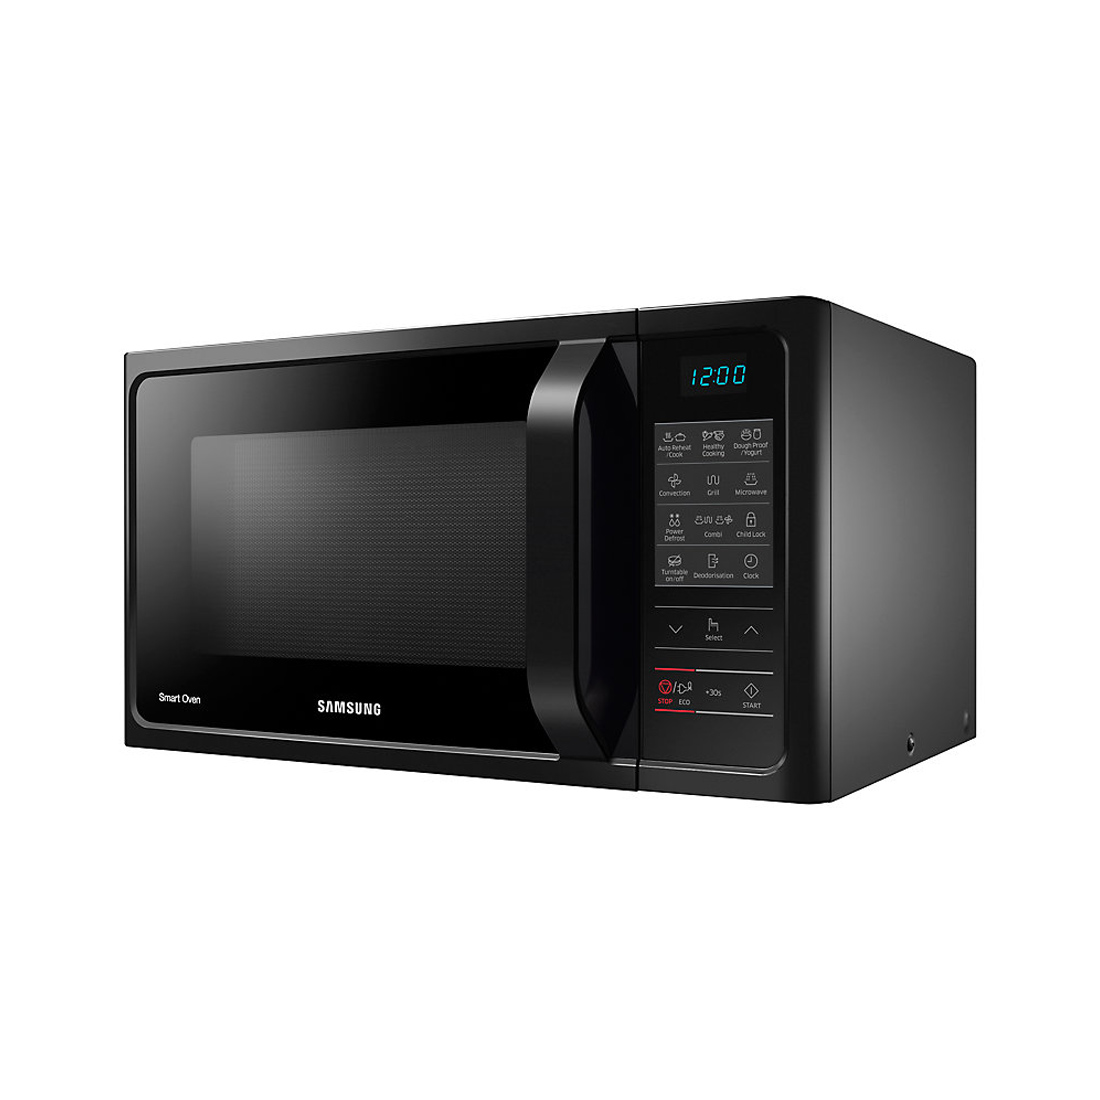 Buy Samsung Microwave Oven Convection 28l Online In Sri